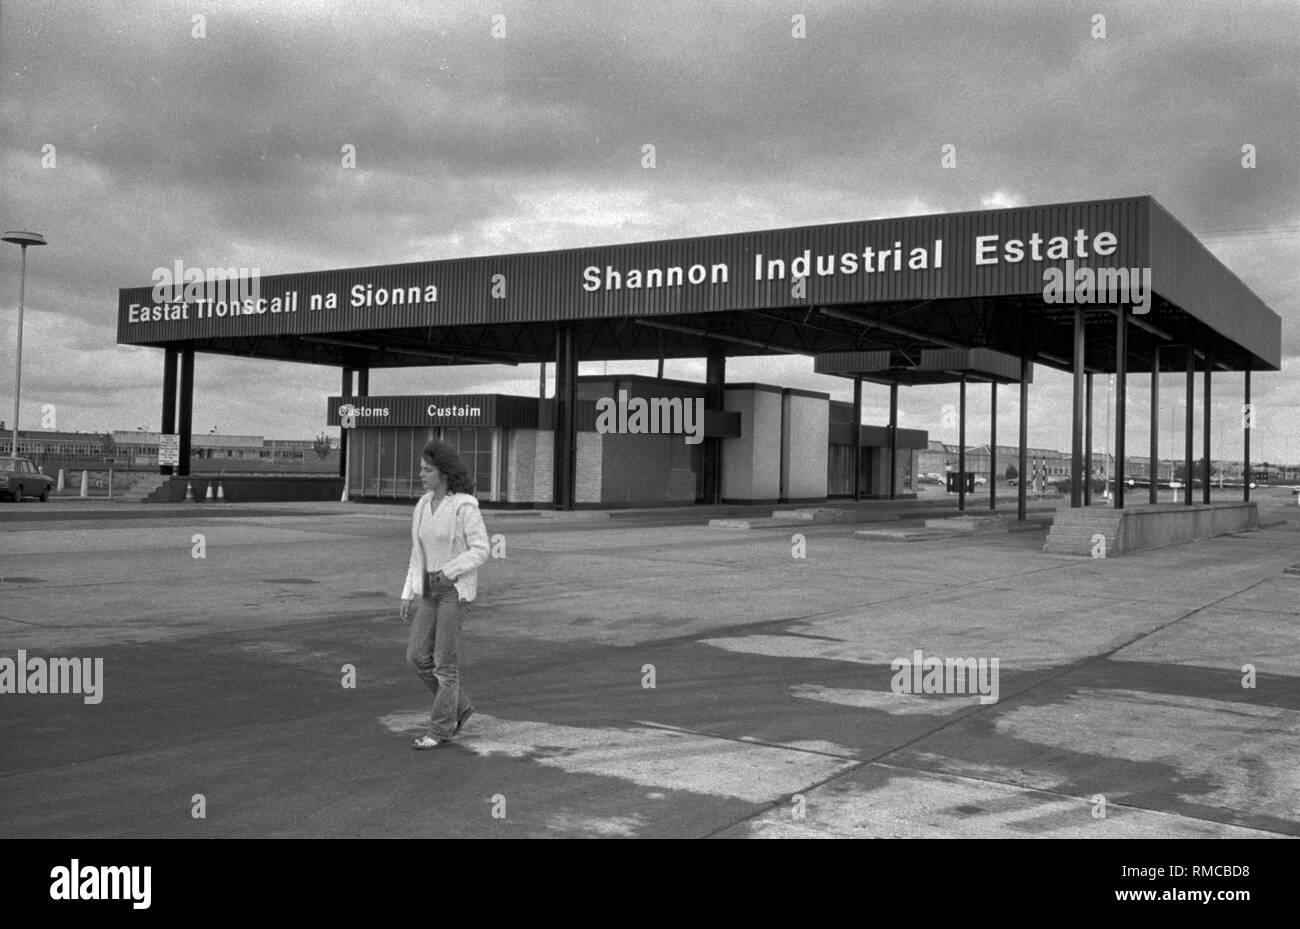 Shannon Industrial Estate Limerick, in County Limerick, Eire. 1970s West Coast of Southern Ireland 70s HOMER SYKES - Stock Image